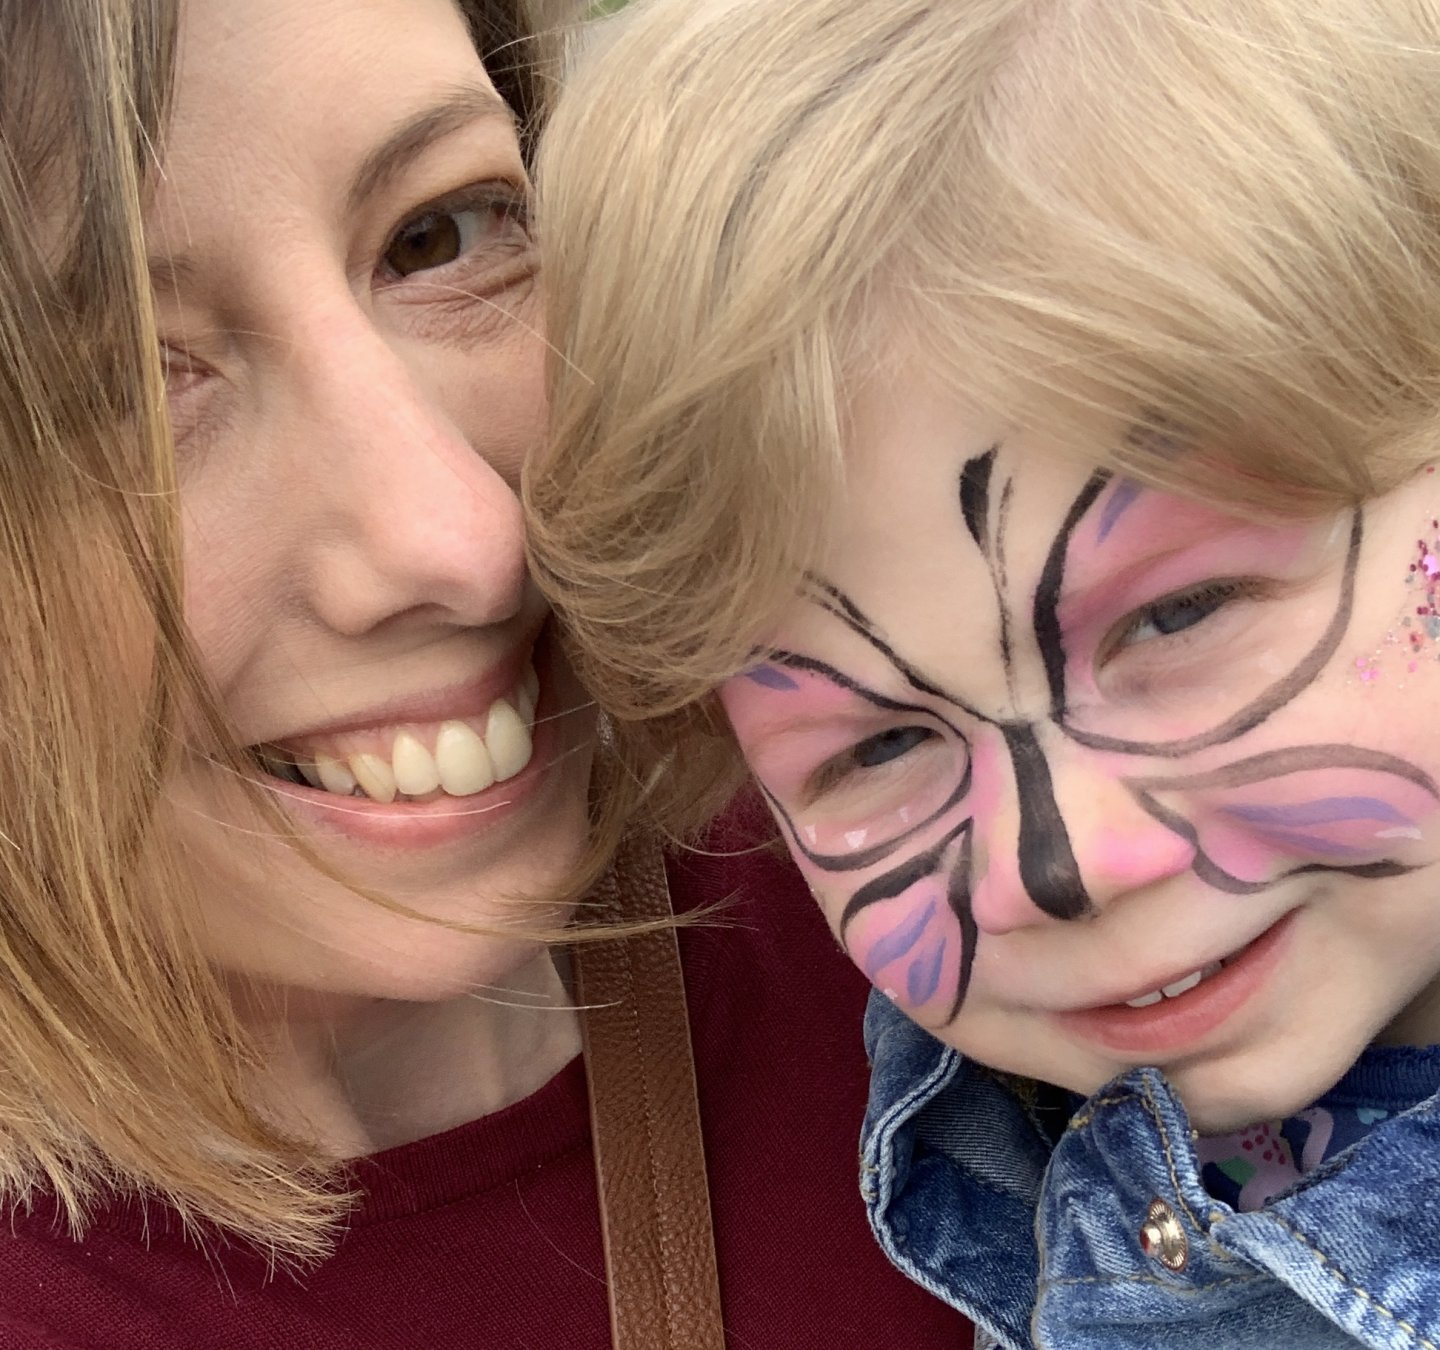 Me with M, with her face painted as a butterfly.